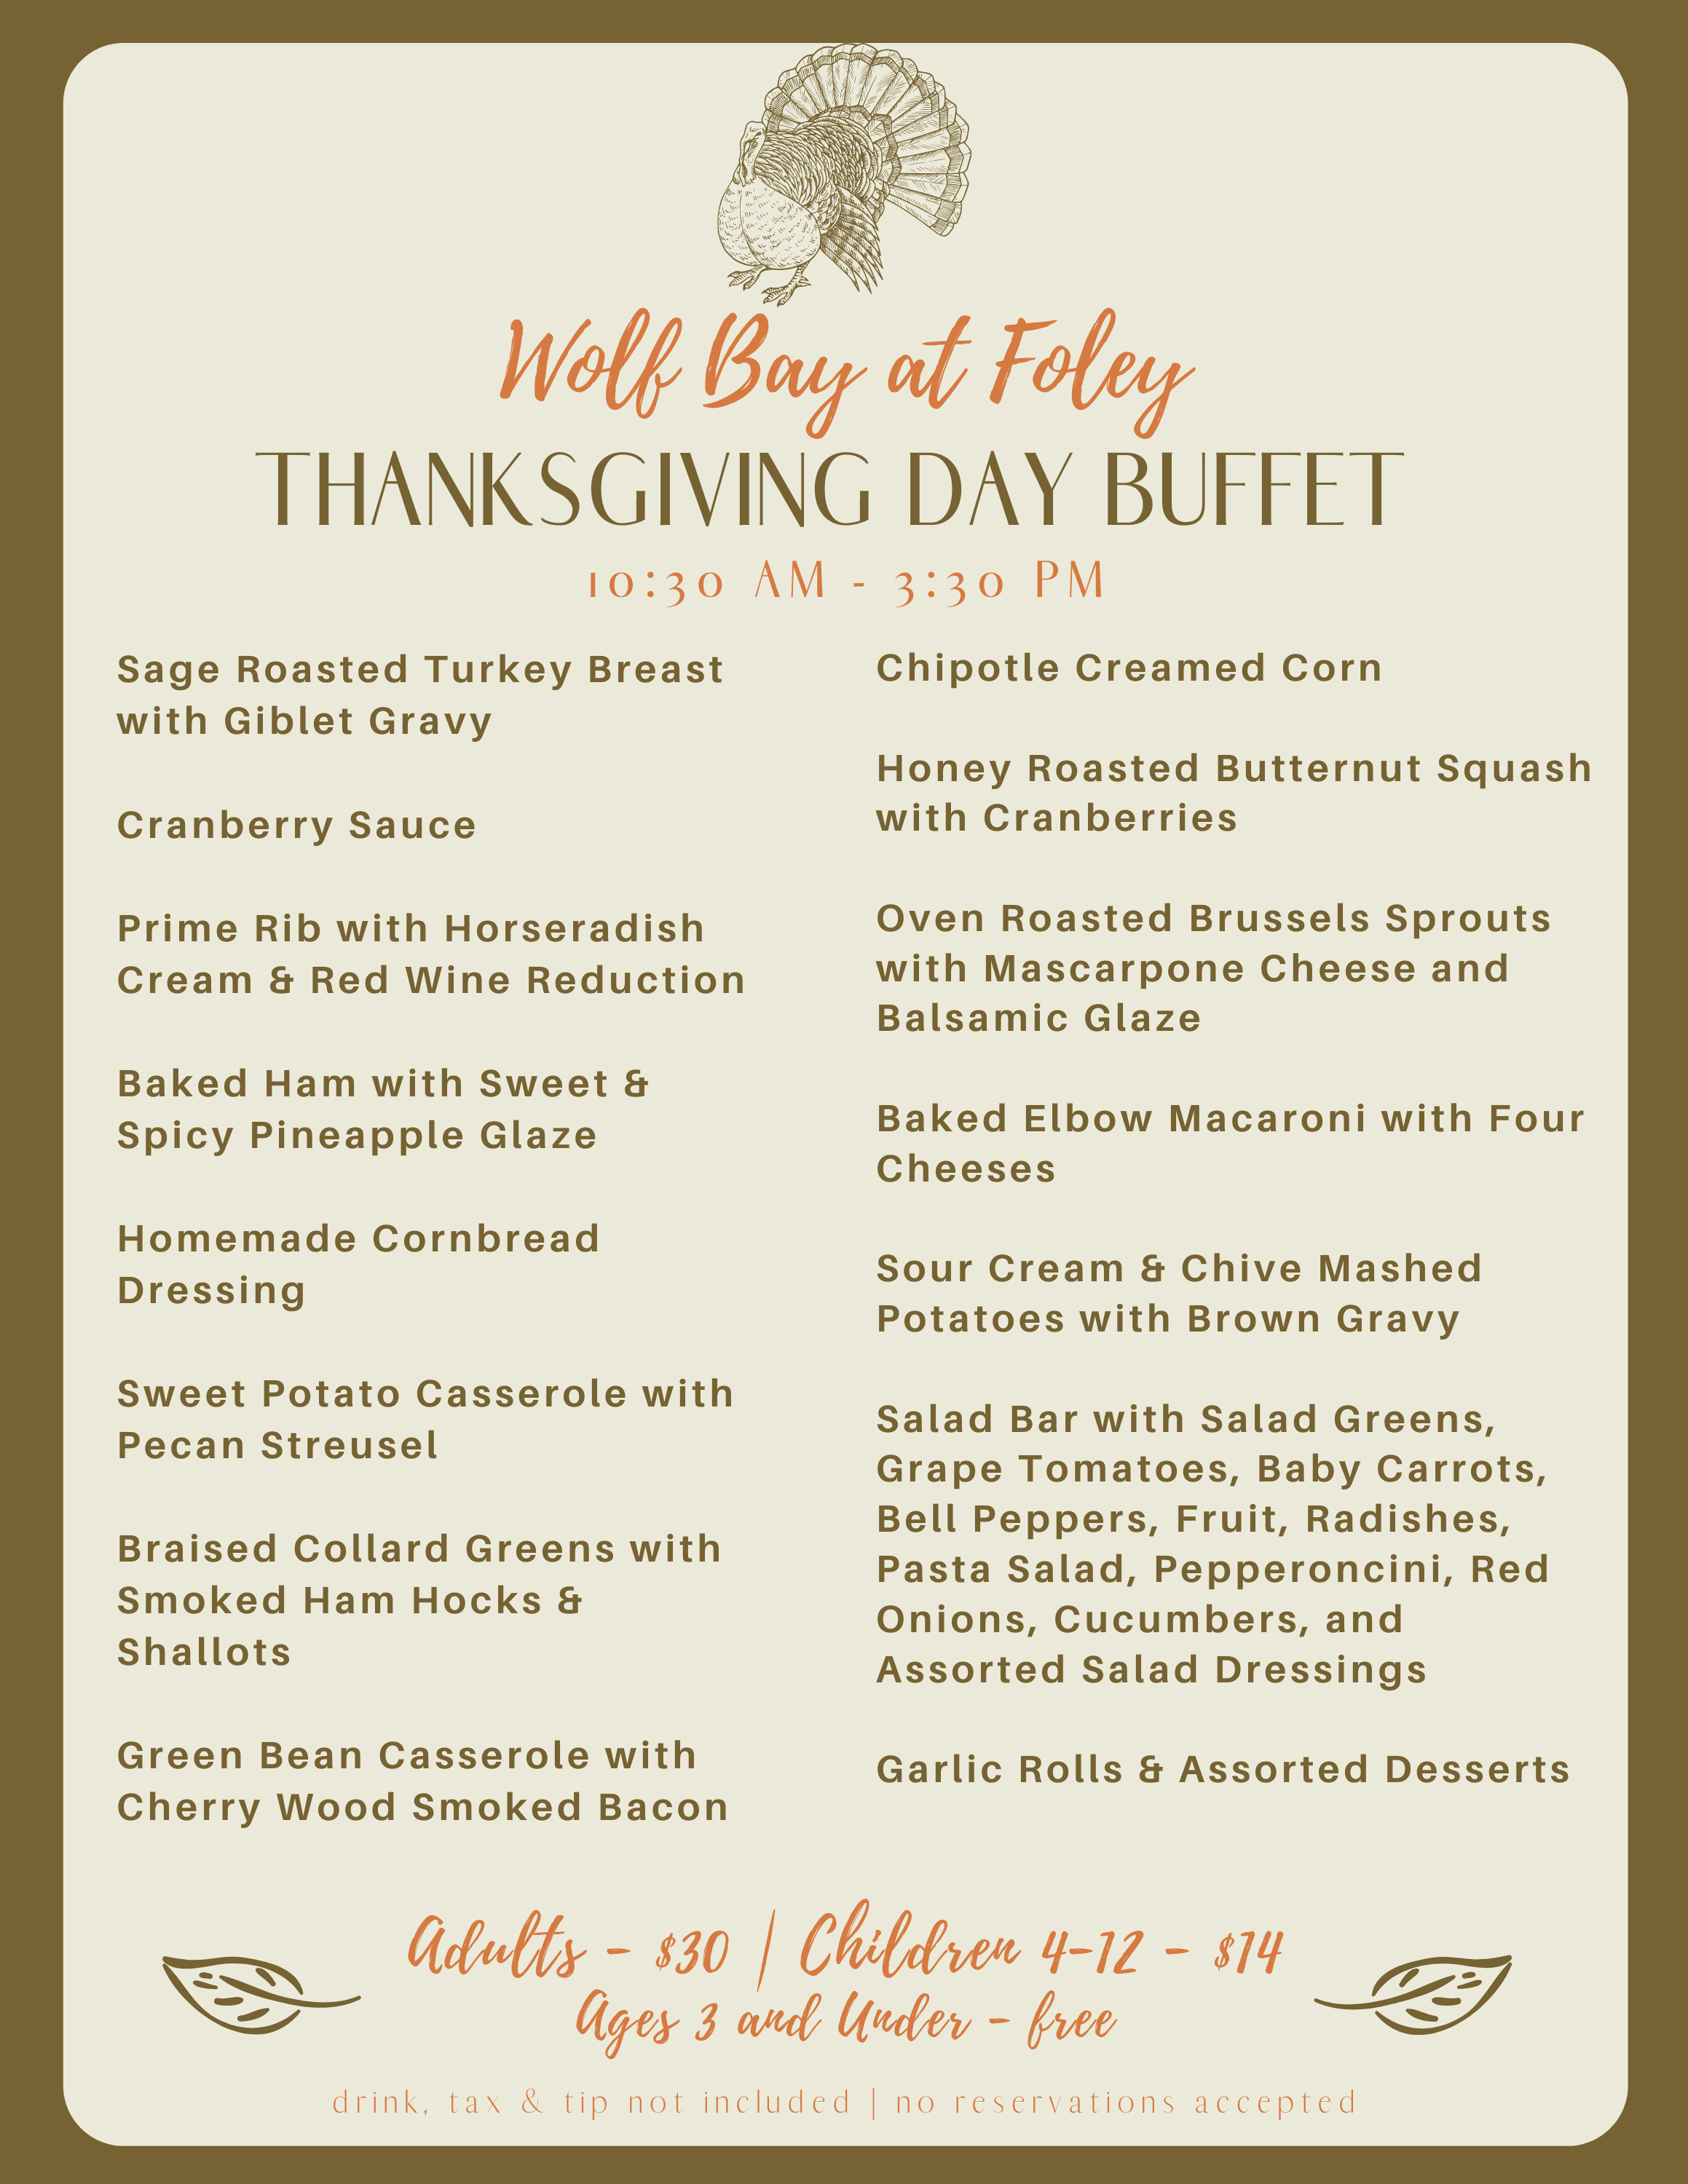 Thanksgiving Dinner Buffet at Wolf Bay (Foley)